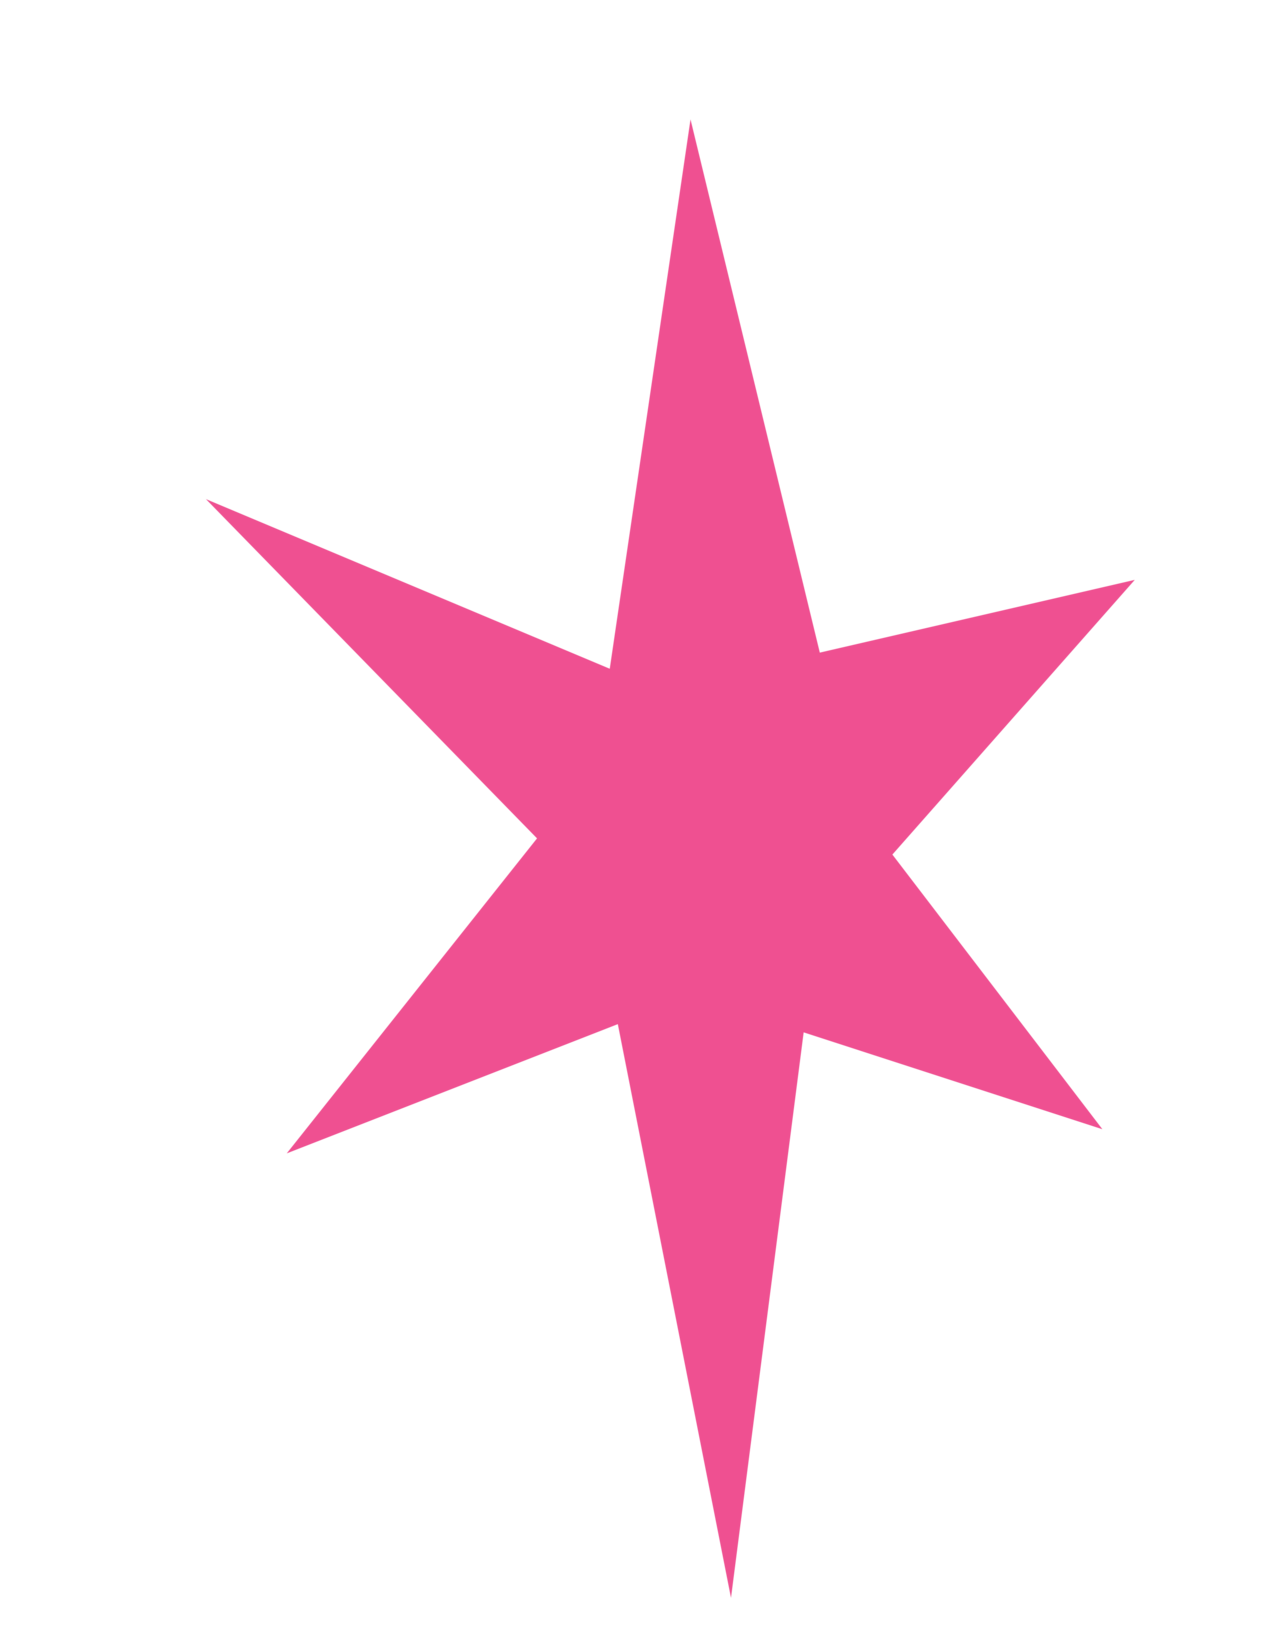 Twilight sparkle cutie mark png. Image call of duty